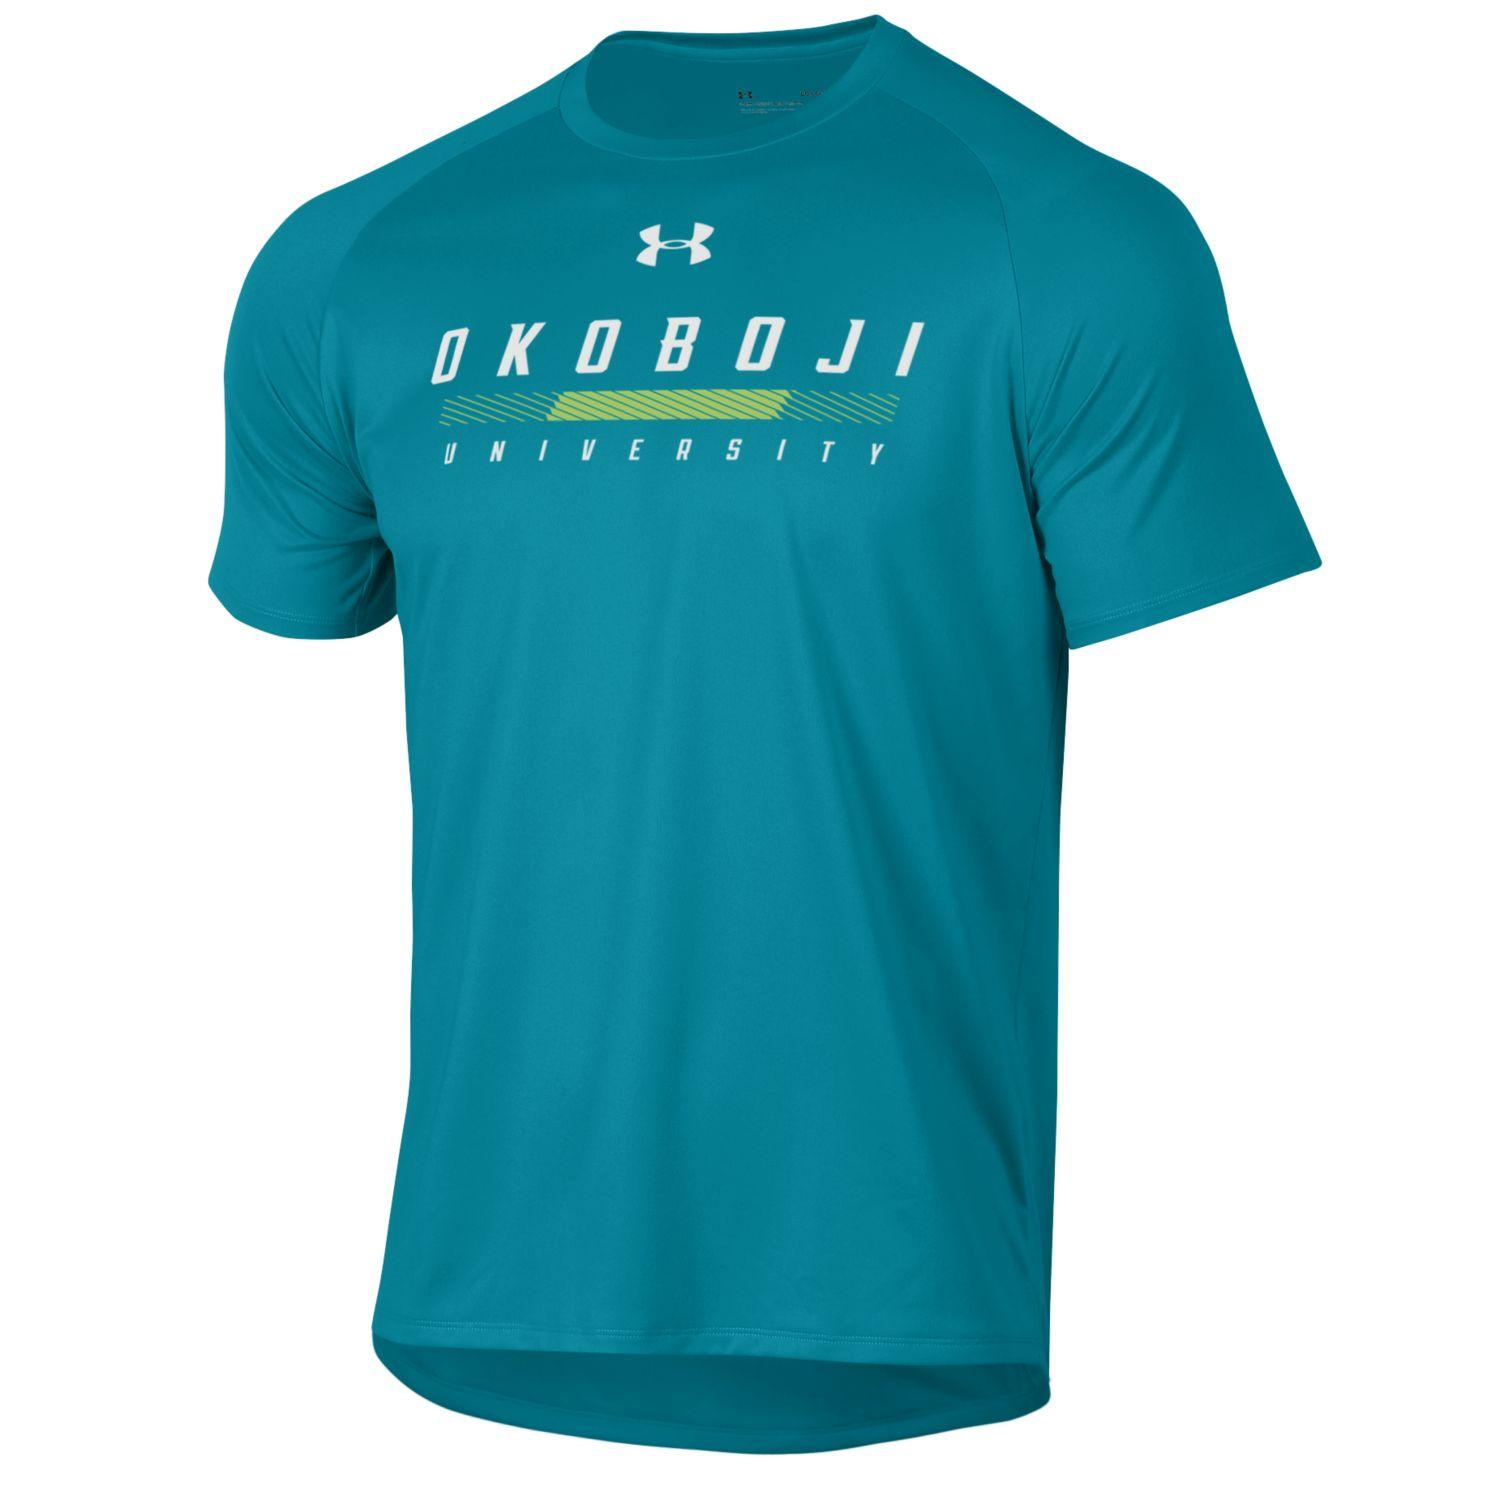 Okoboji Costal Teal Tech Short Sleeve Tee